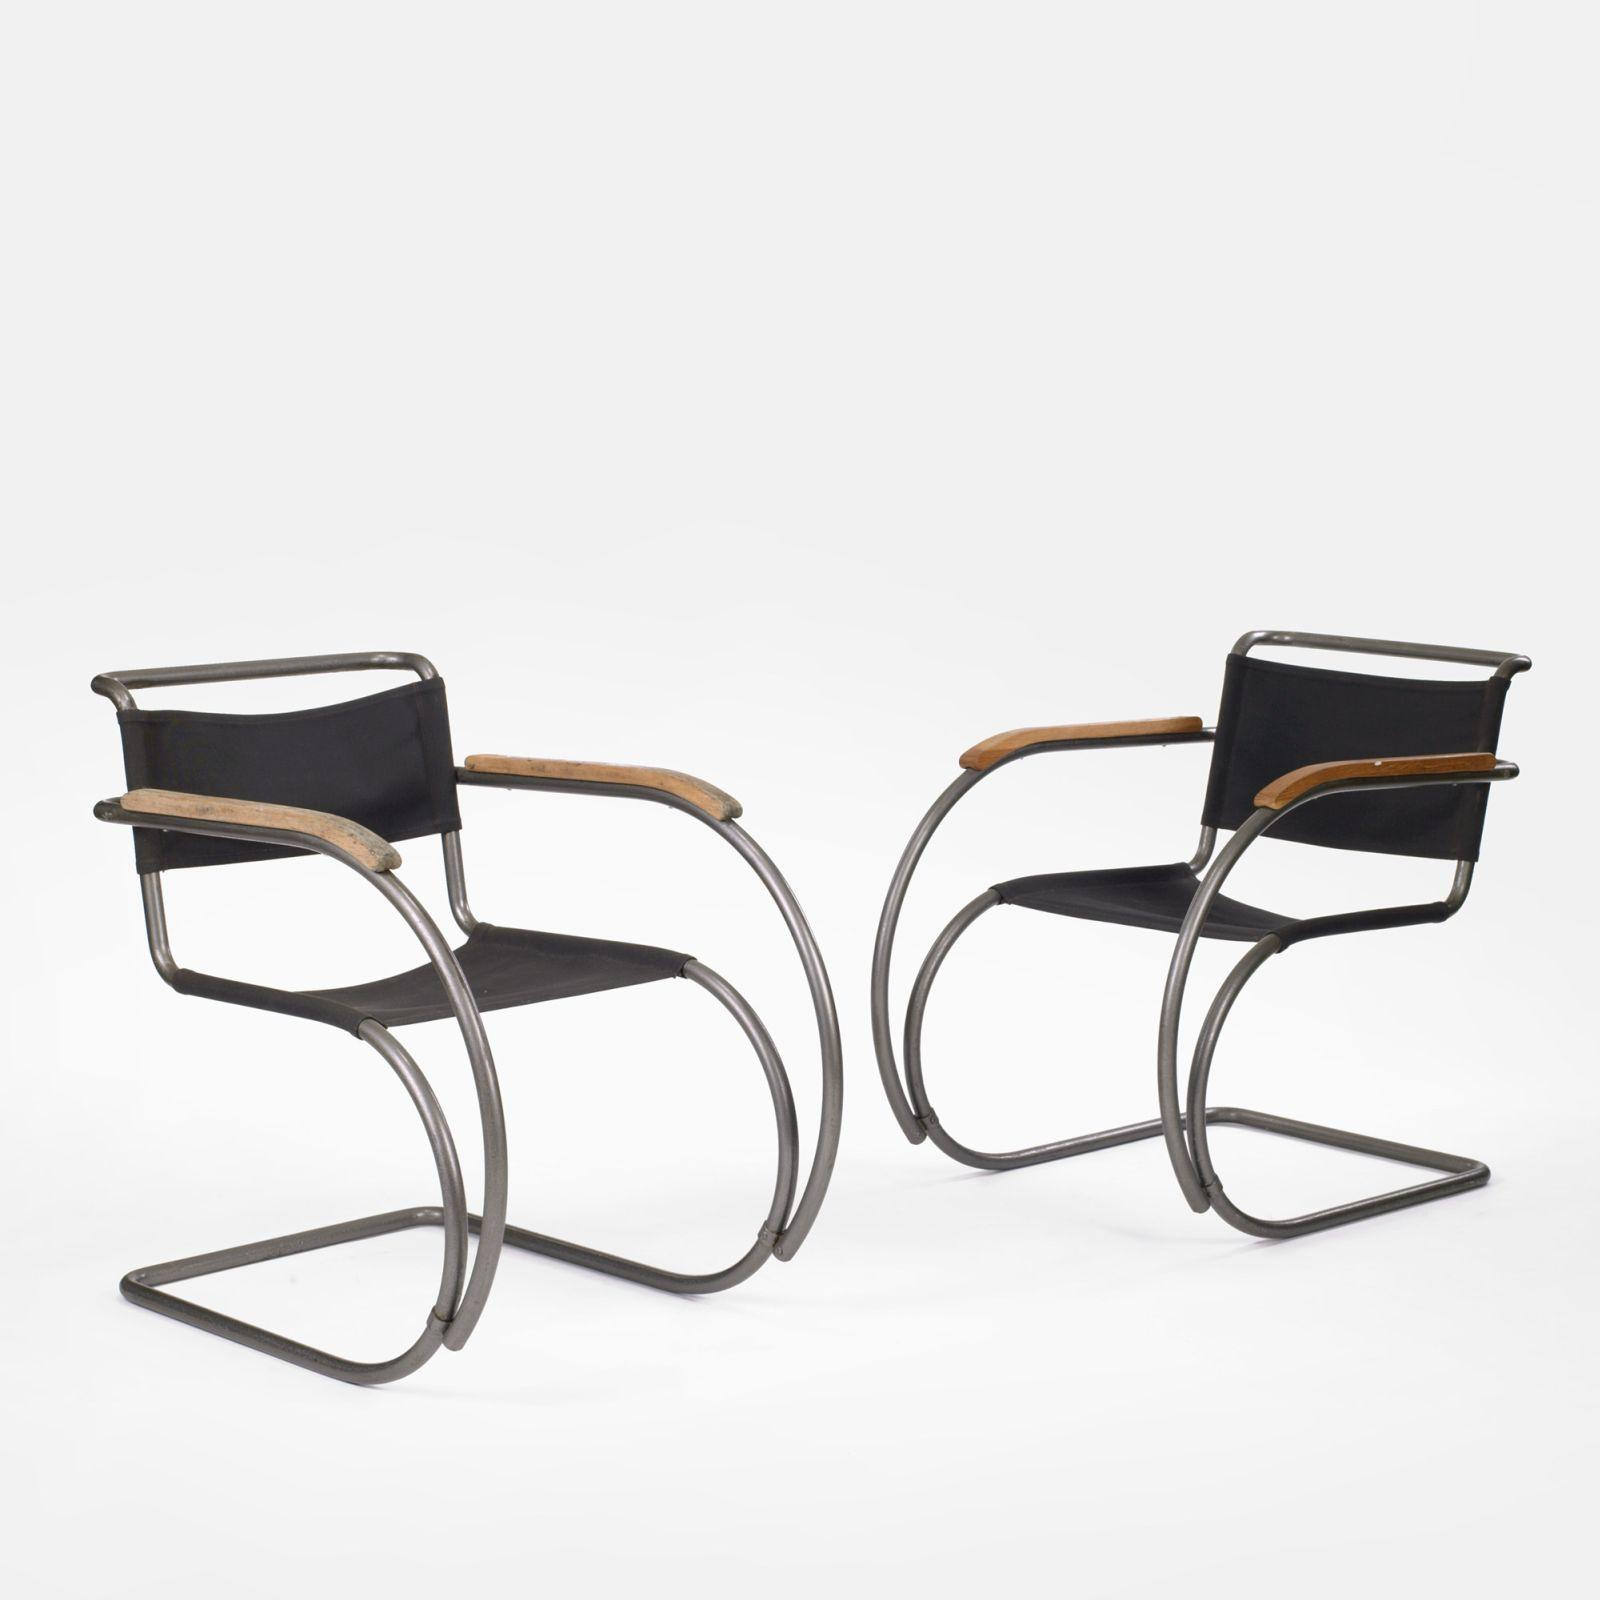 Ludwig Mies van der Rohe MR20 lounge chairs pair